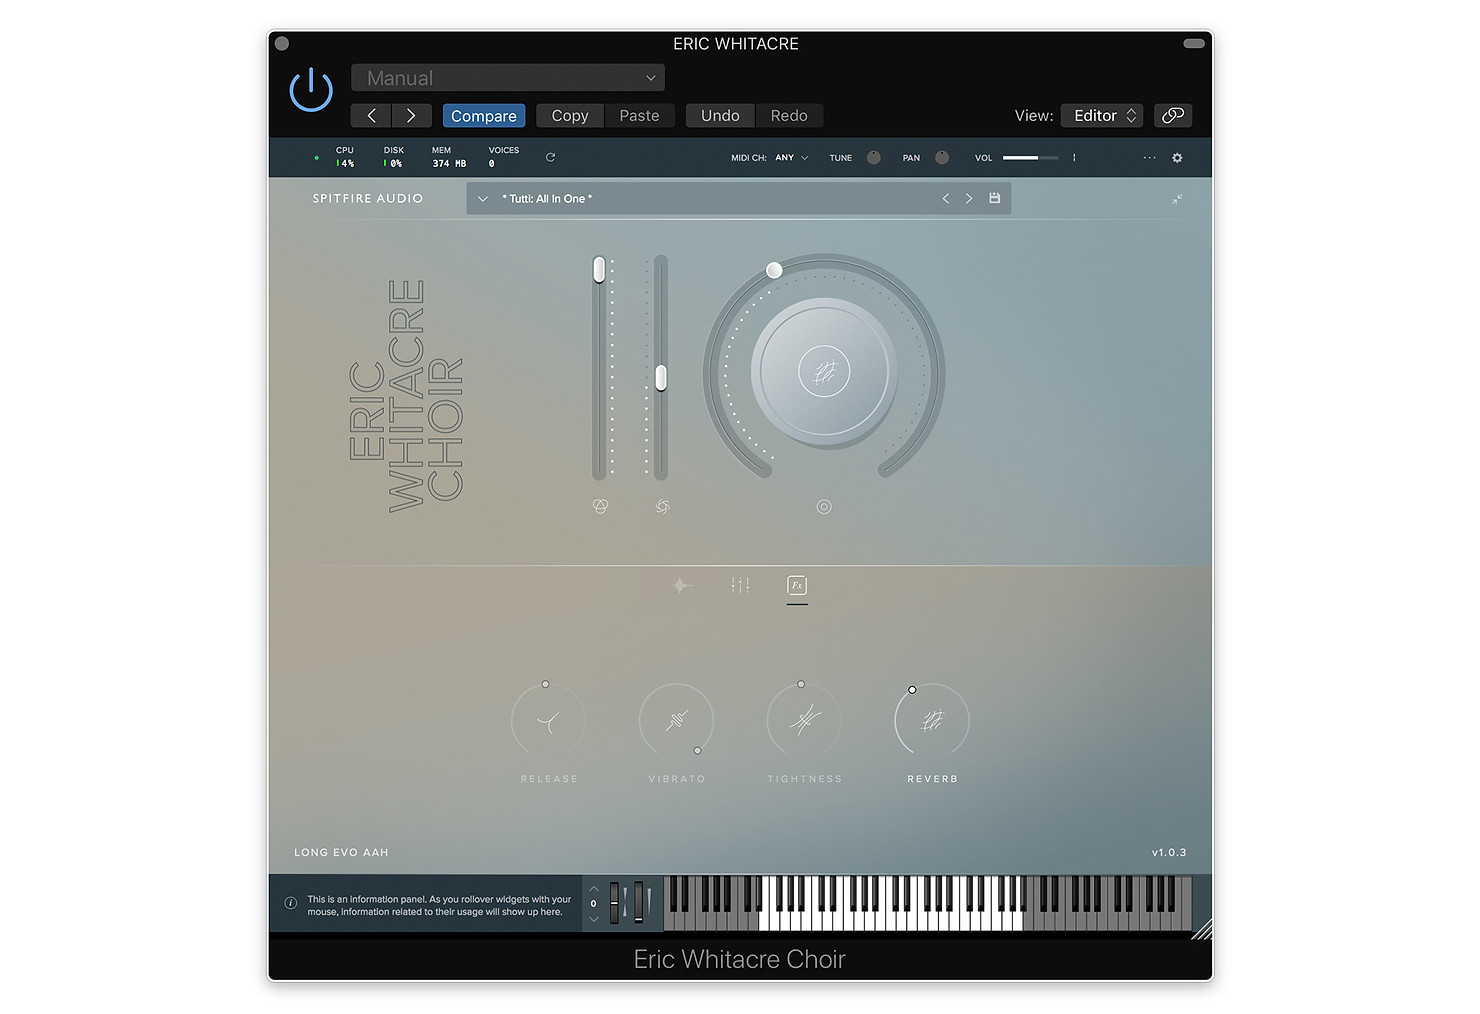 Eric Whitacre Choir GUI by Spitfire Audio